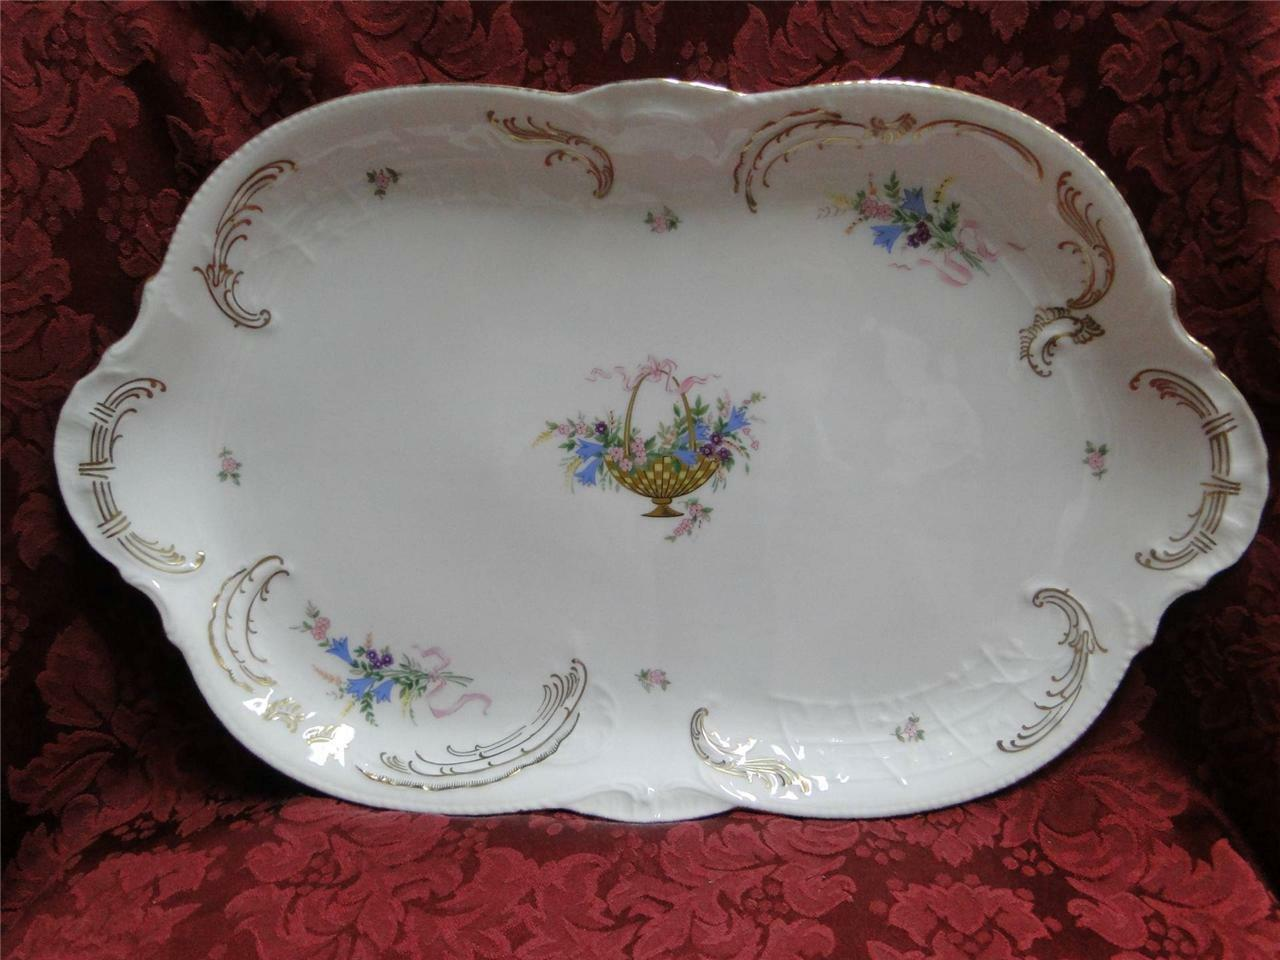 Rosenthal Rokoko, Flower Basket, Ribbons: Oval Serving Platter, 15 1/2""